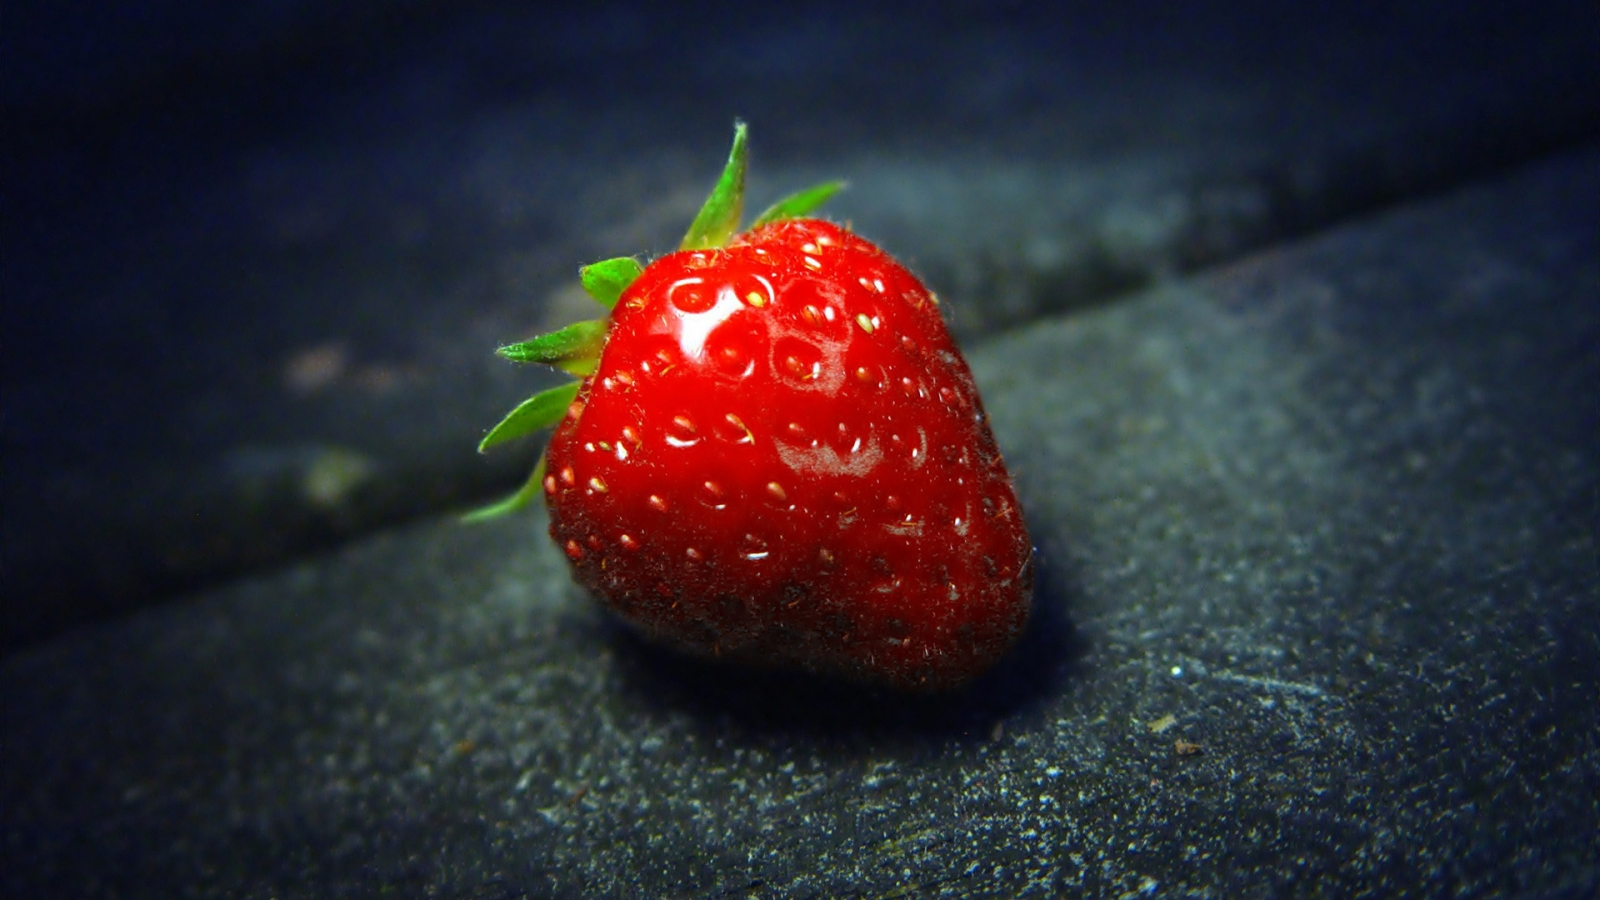 The Strawberry for 1600 x 900 HDTV resolution